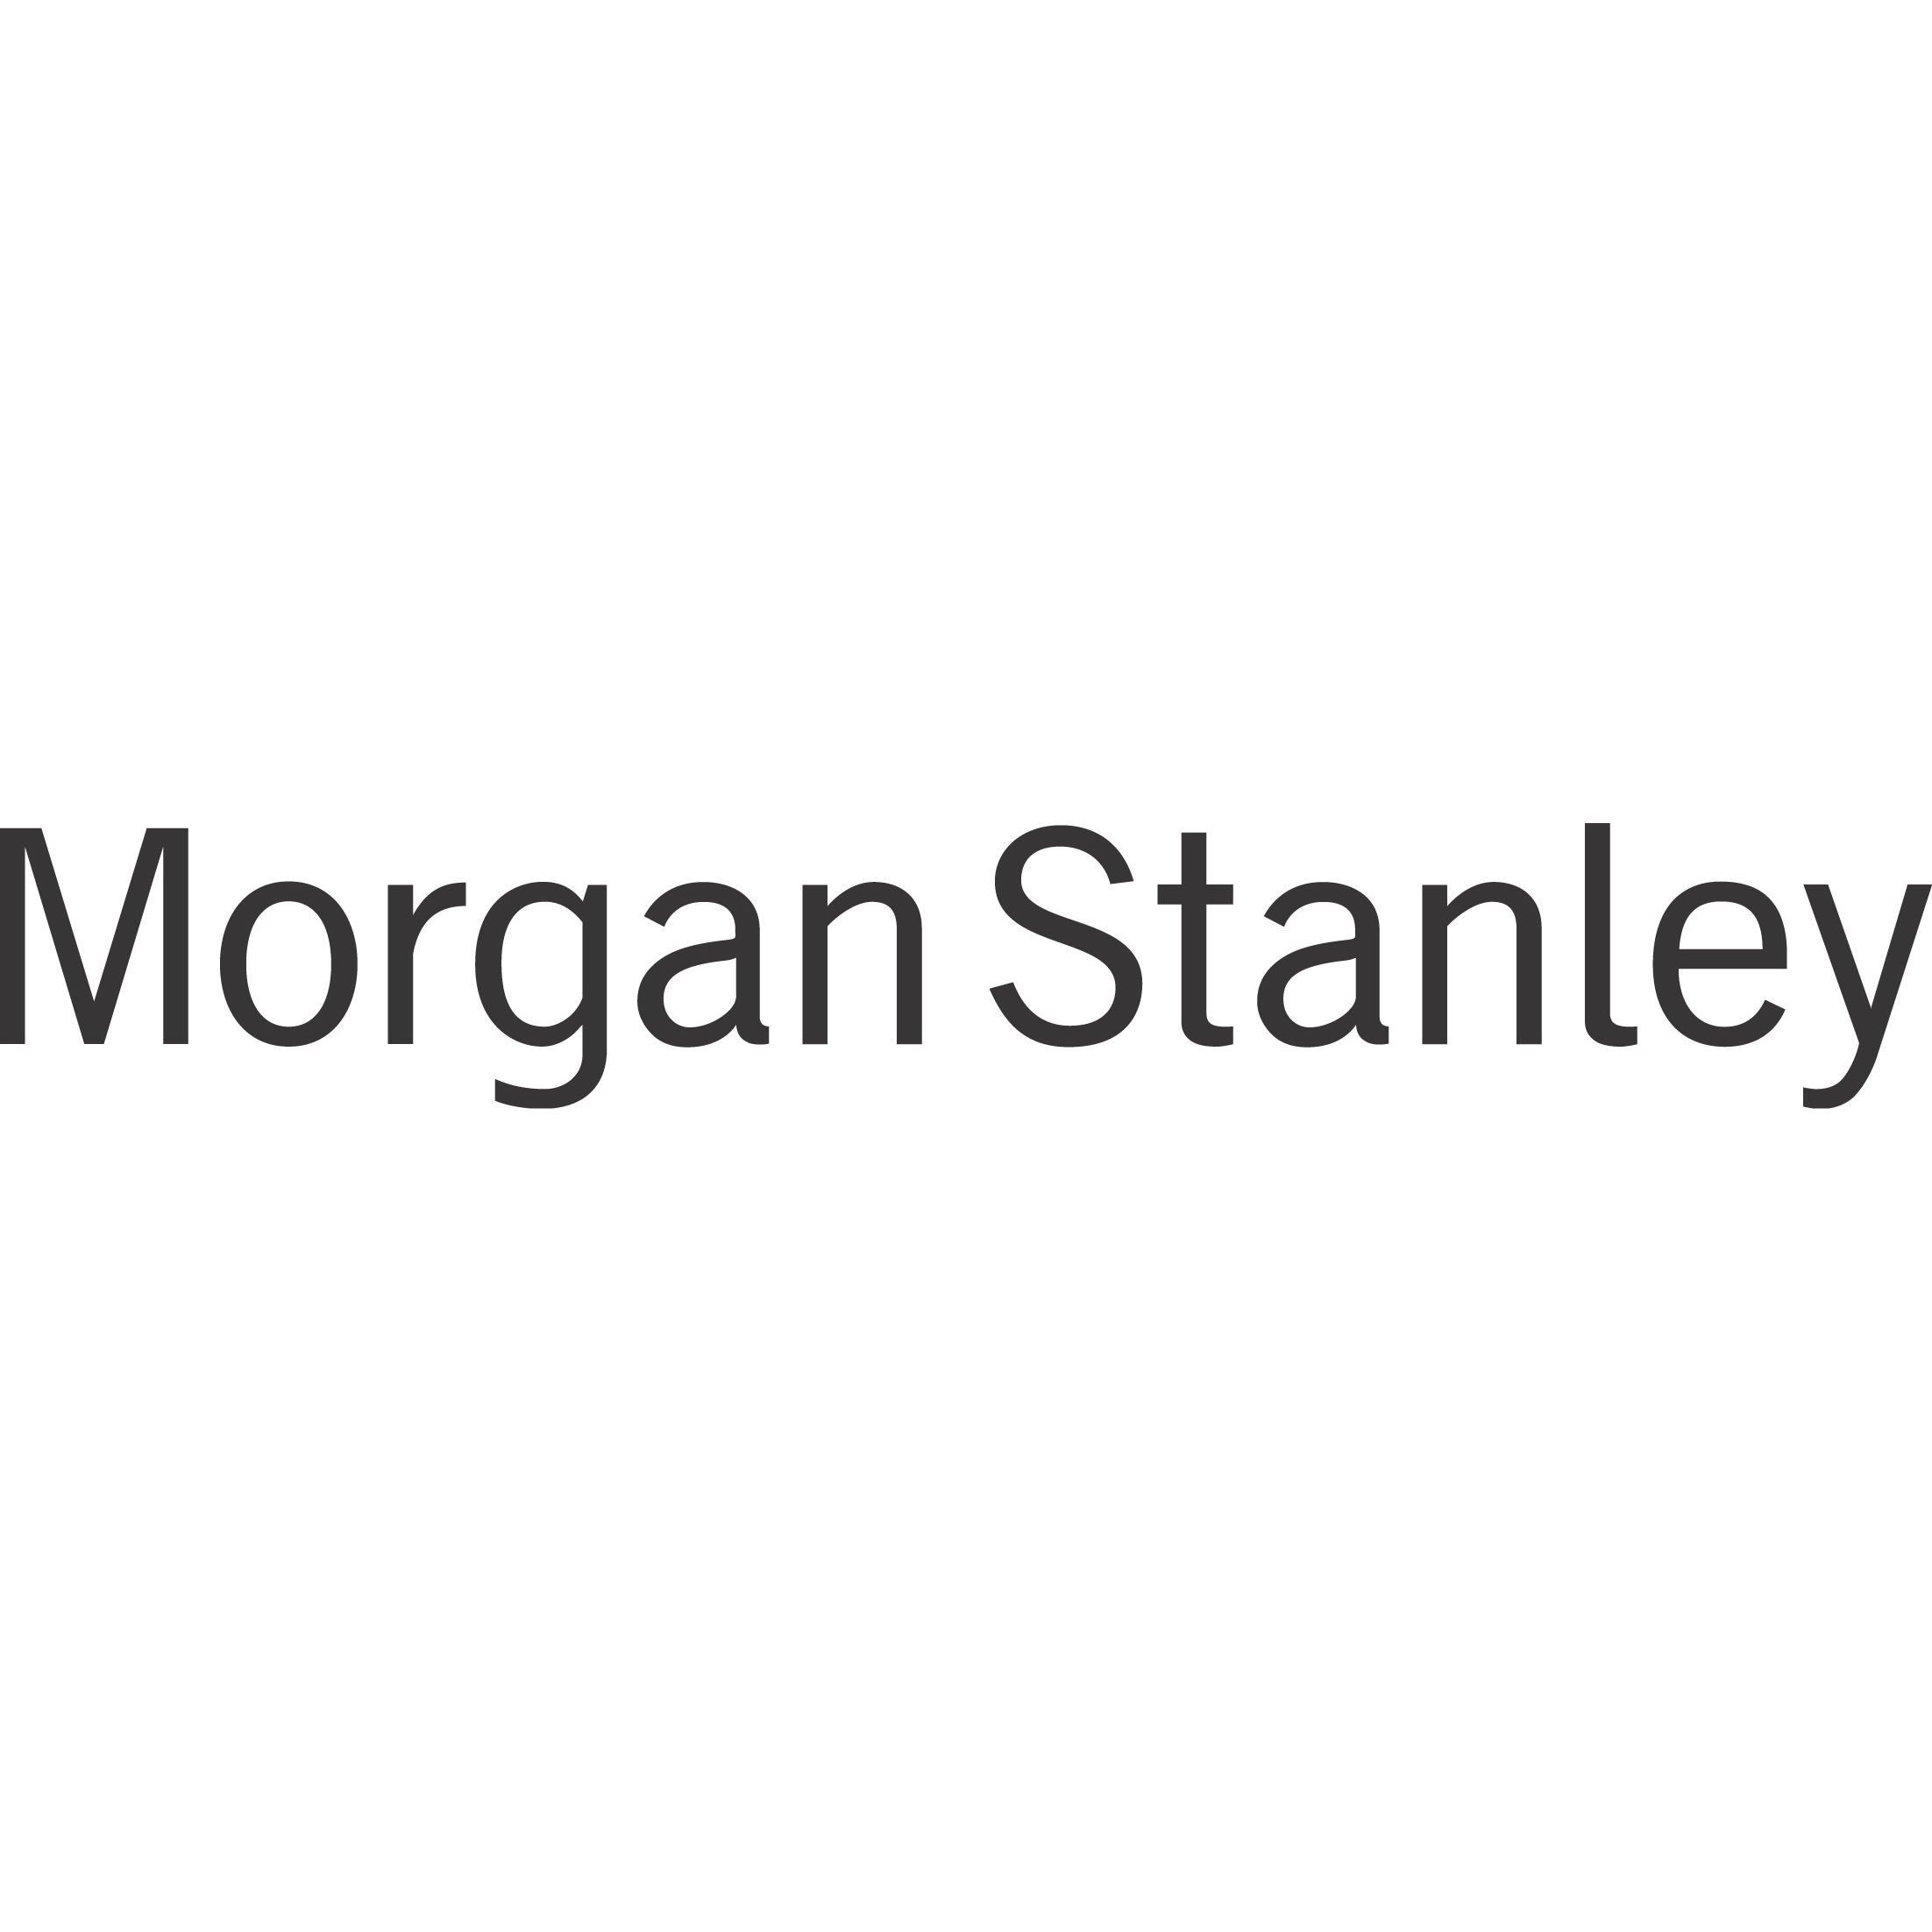 Brian Cook - Morgan Stanley | Financial Advisor in Anchorage,Alaska